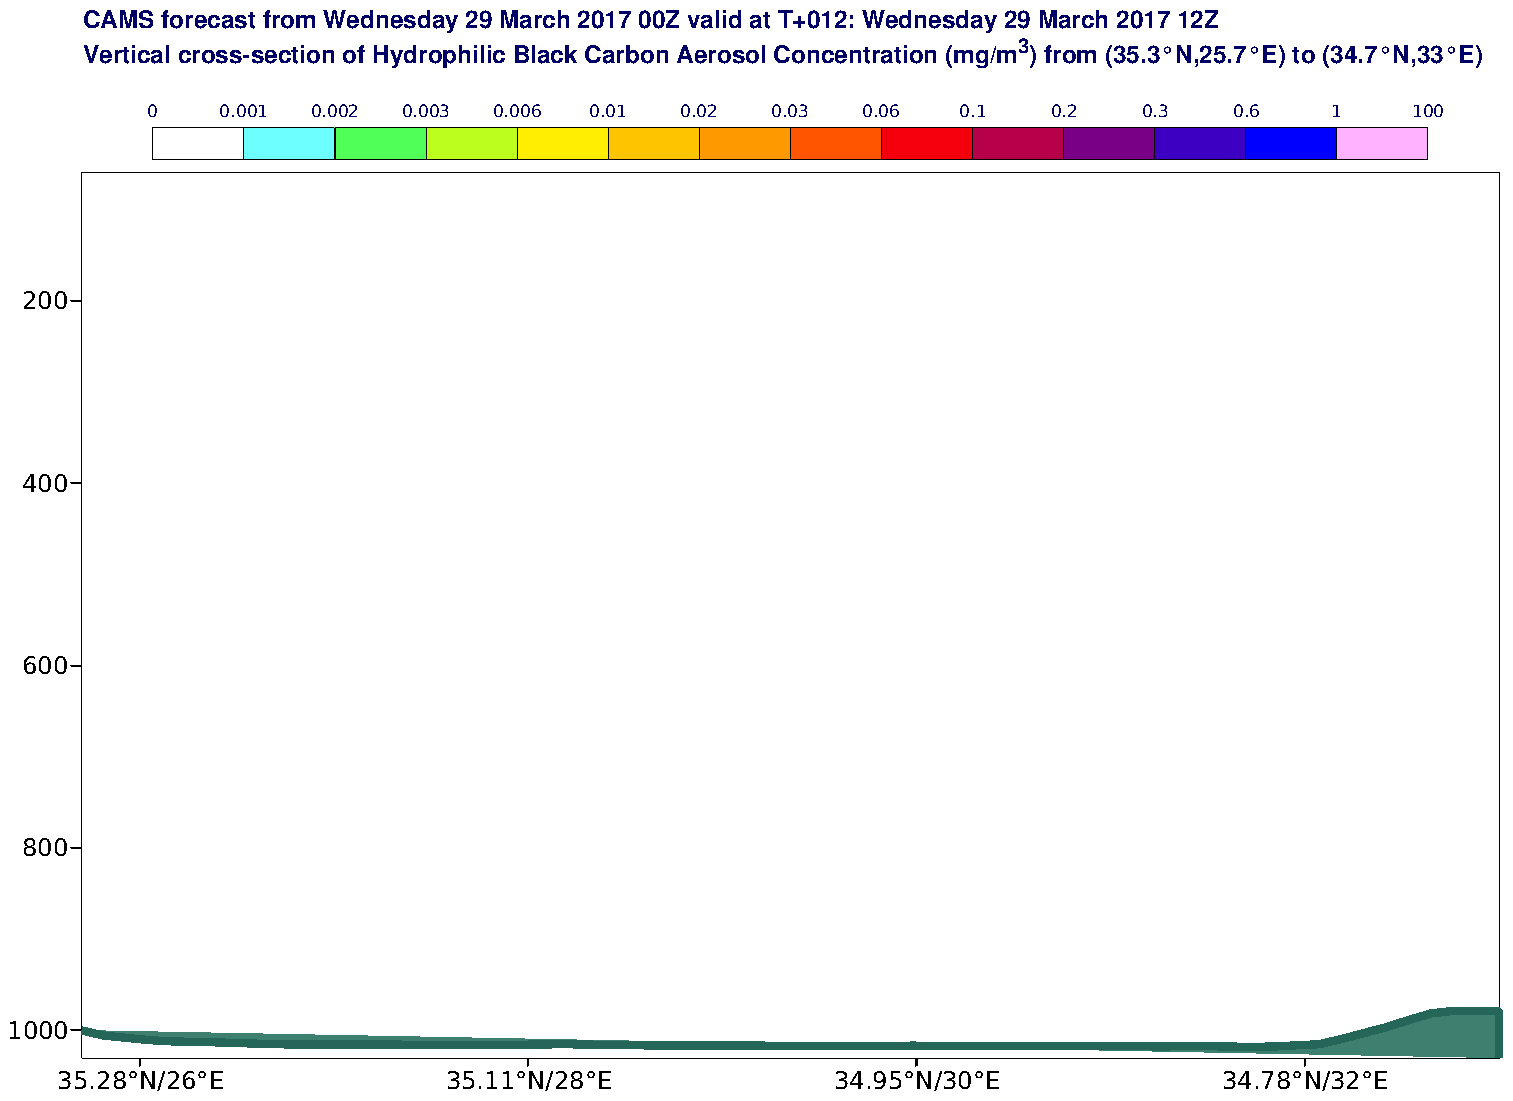 Vertical cross-section of Hydrophilic Black Carbon Aerosol Concentration (mg/m3) valid at T12 - 2017-03-29 12:00